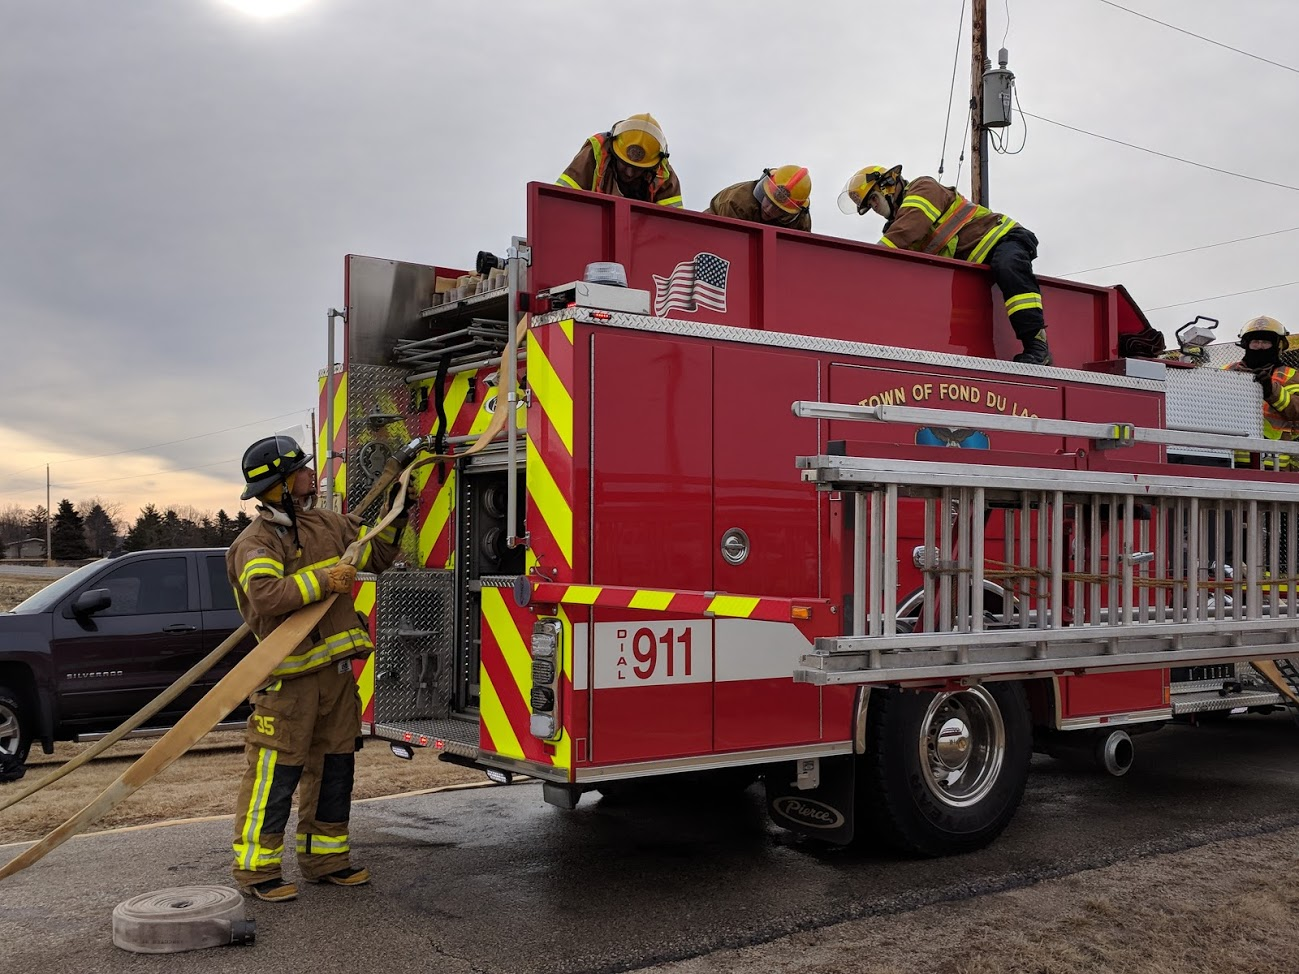 Student training to be firefighters unraveling the rope from the firetruck.